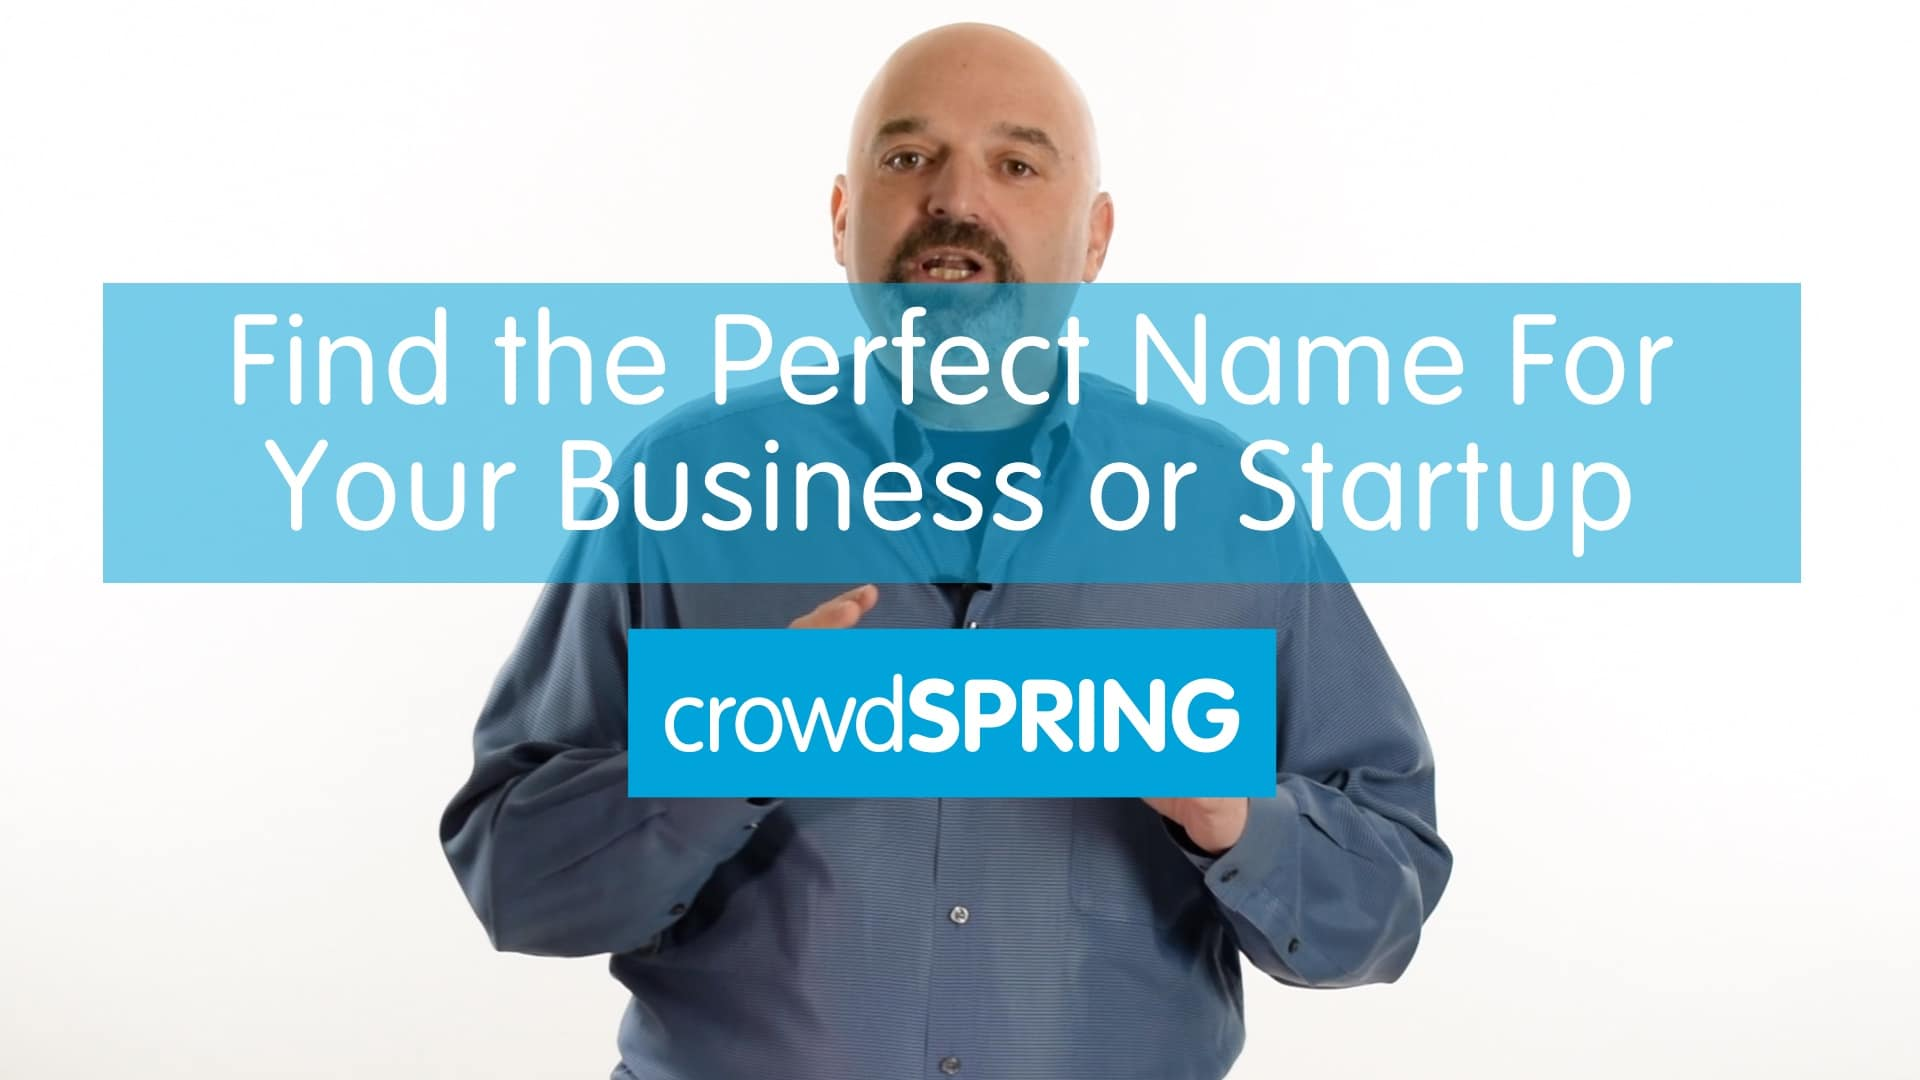 Find the Perfect Name For Your Business or Startup With These 10 Tips